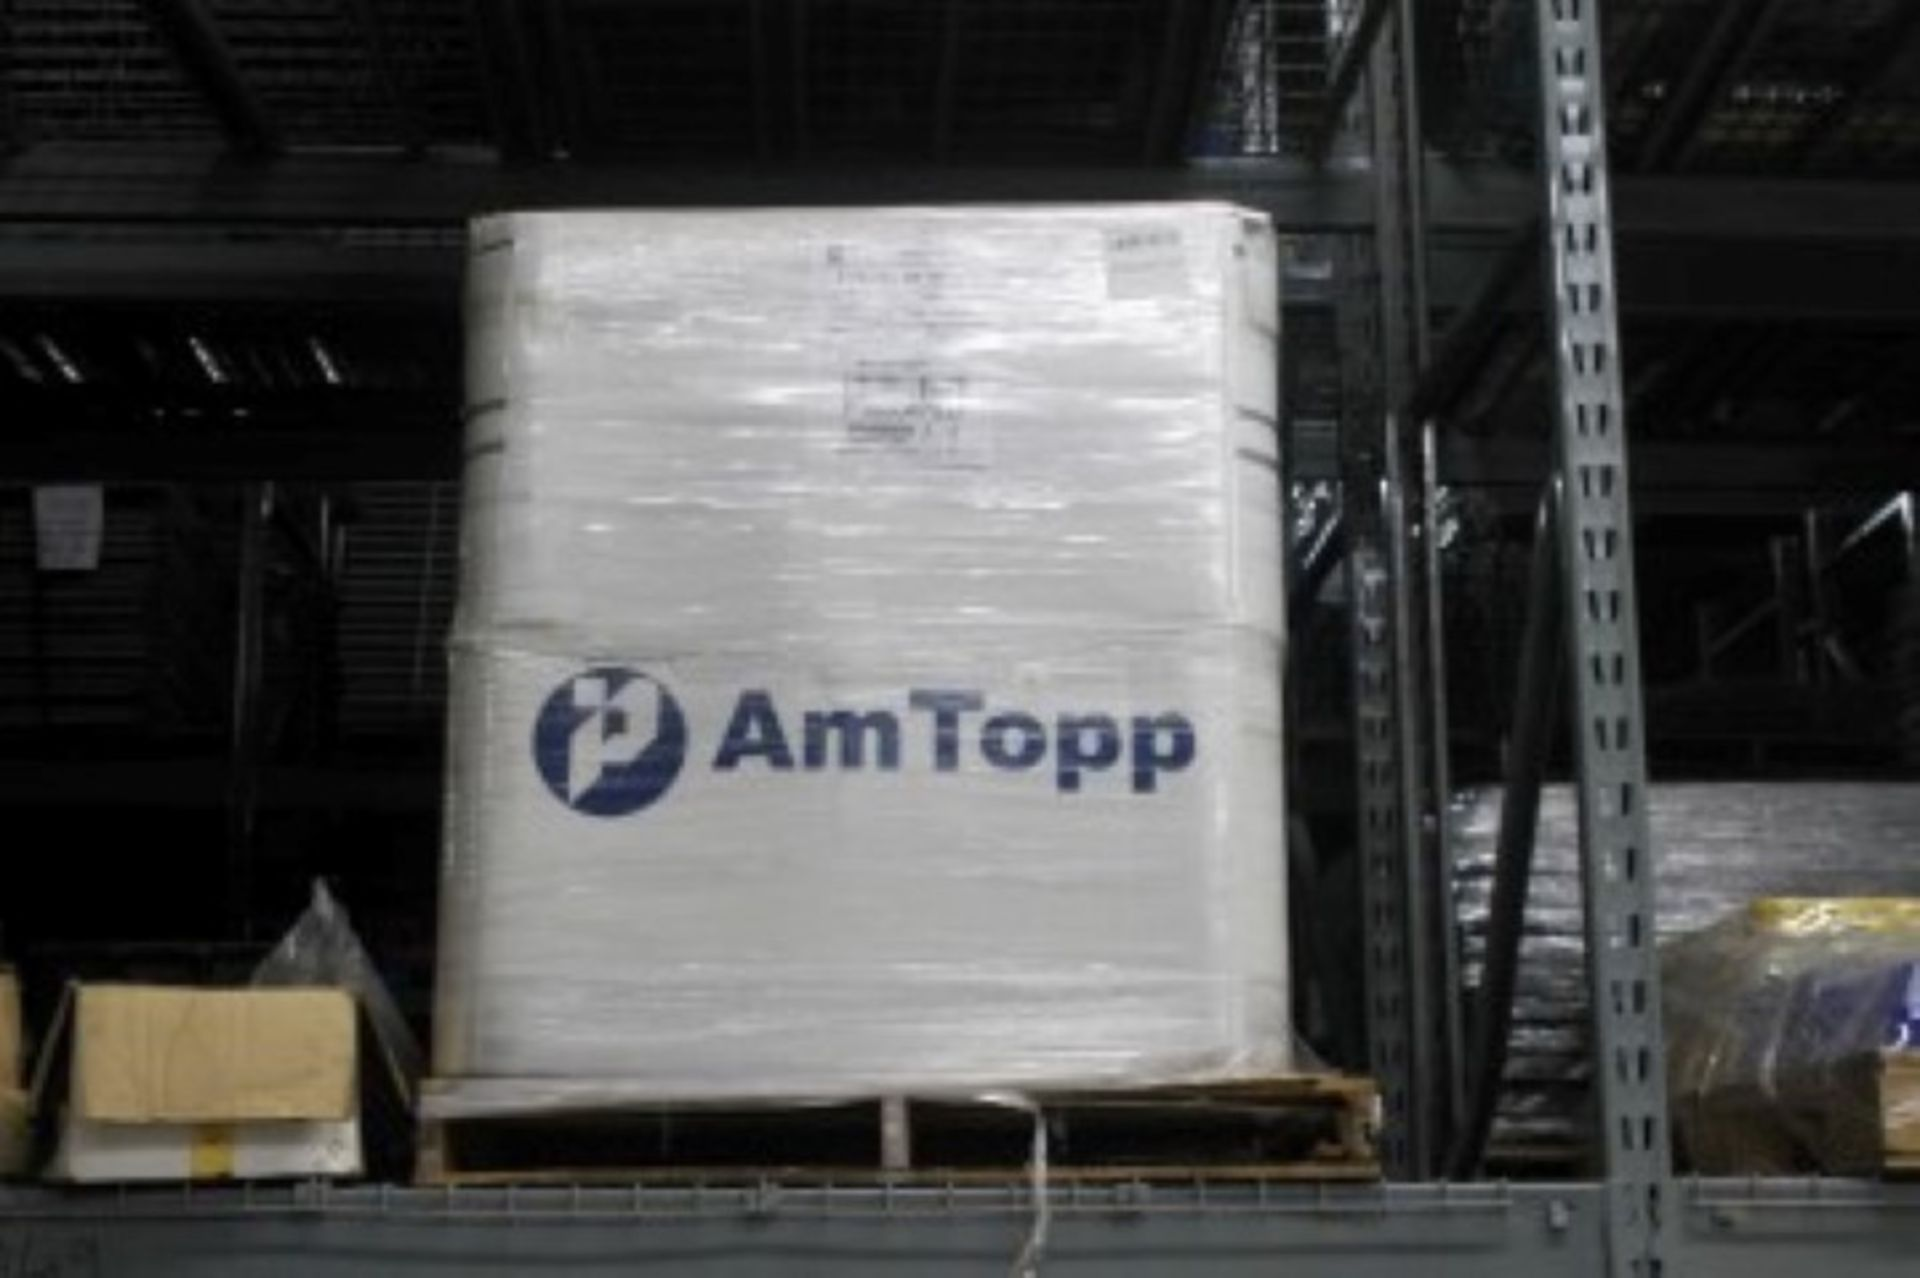 Lot 8 - FULL PALLET OF AMTOP XTREME 0.63MIL X 20 INCH-CLEAN STRETCH FILM ROLL 50 ROLLS TOTAL IN PALLET